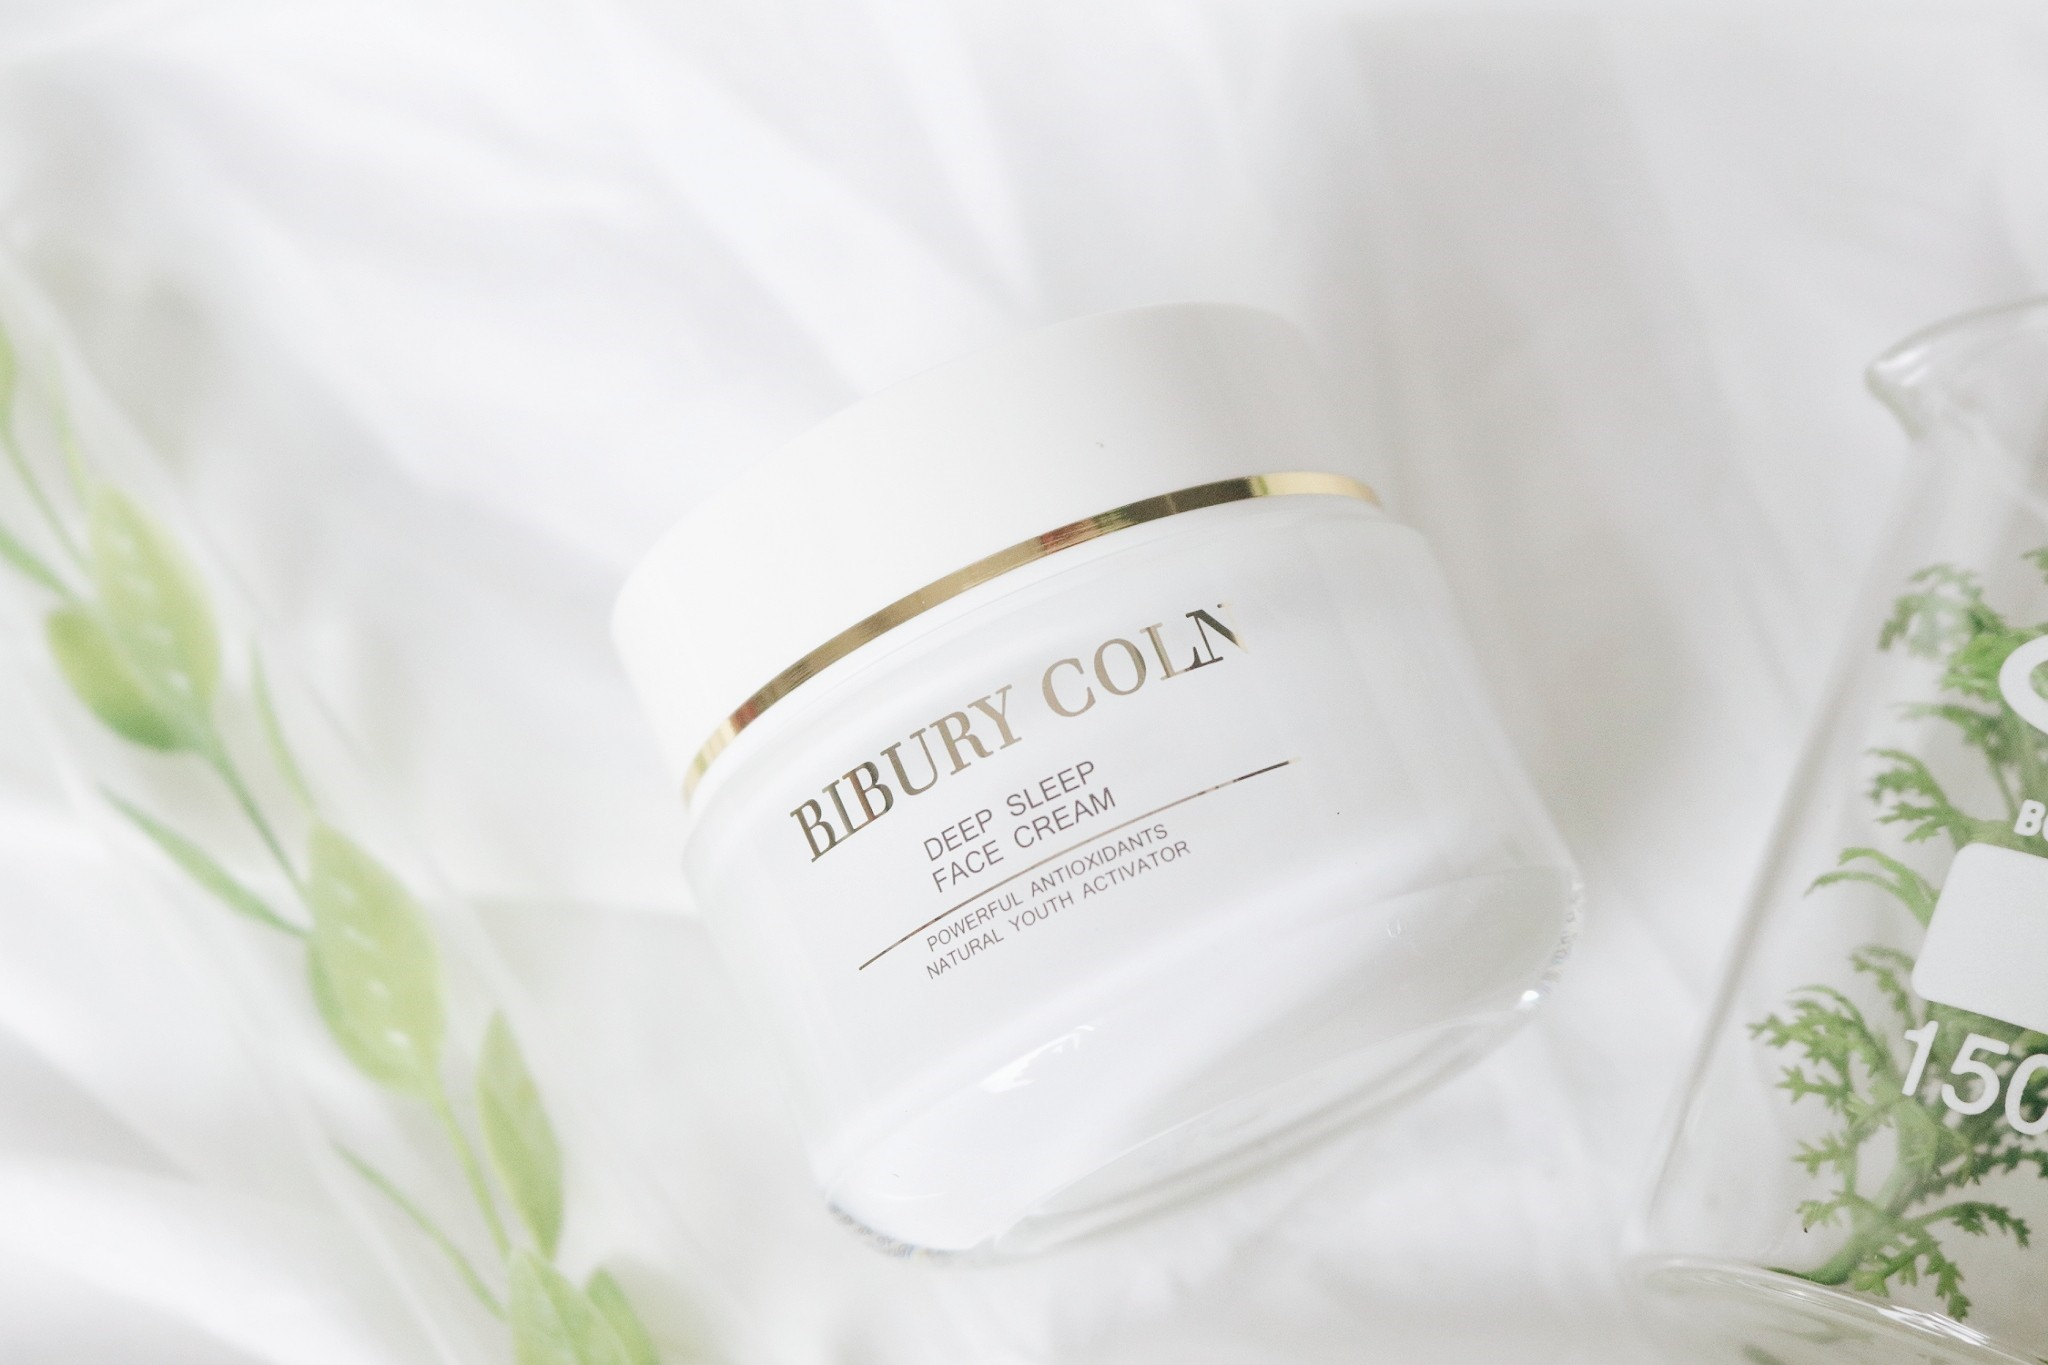 Bibury Coln Deep Sleep Face Cream